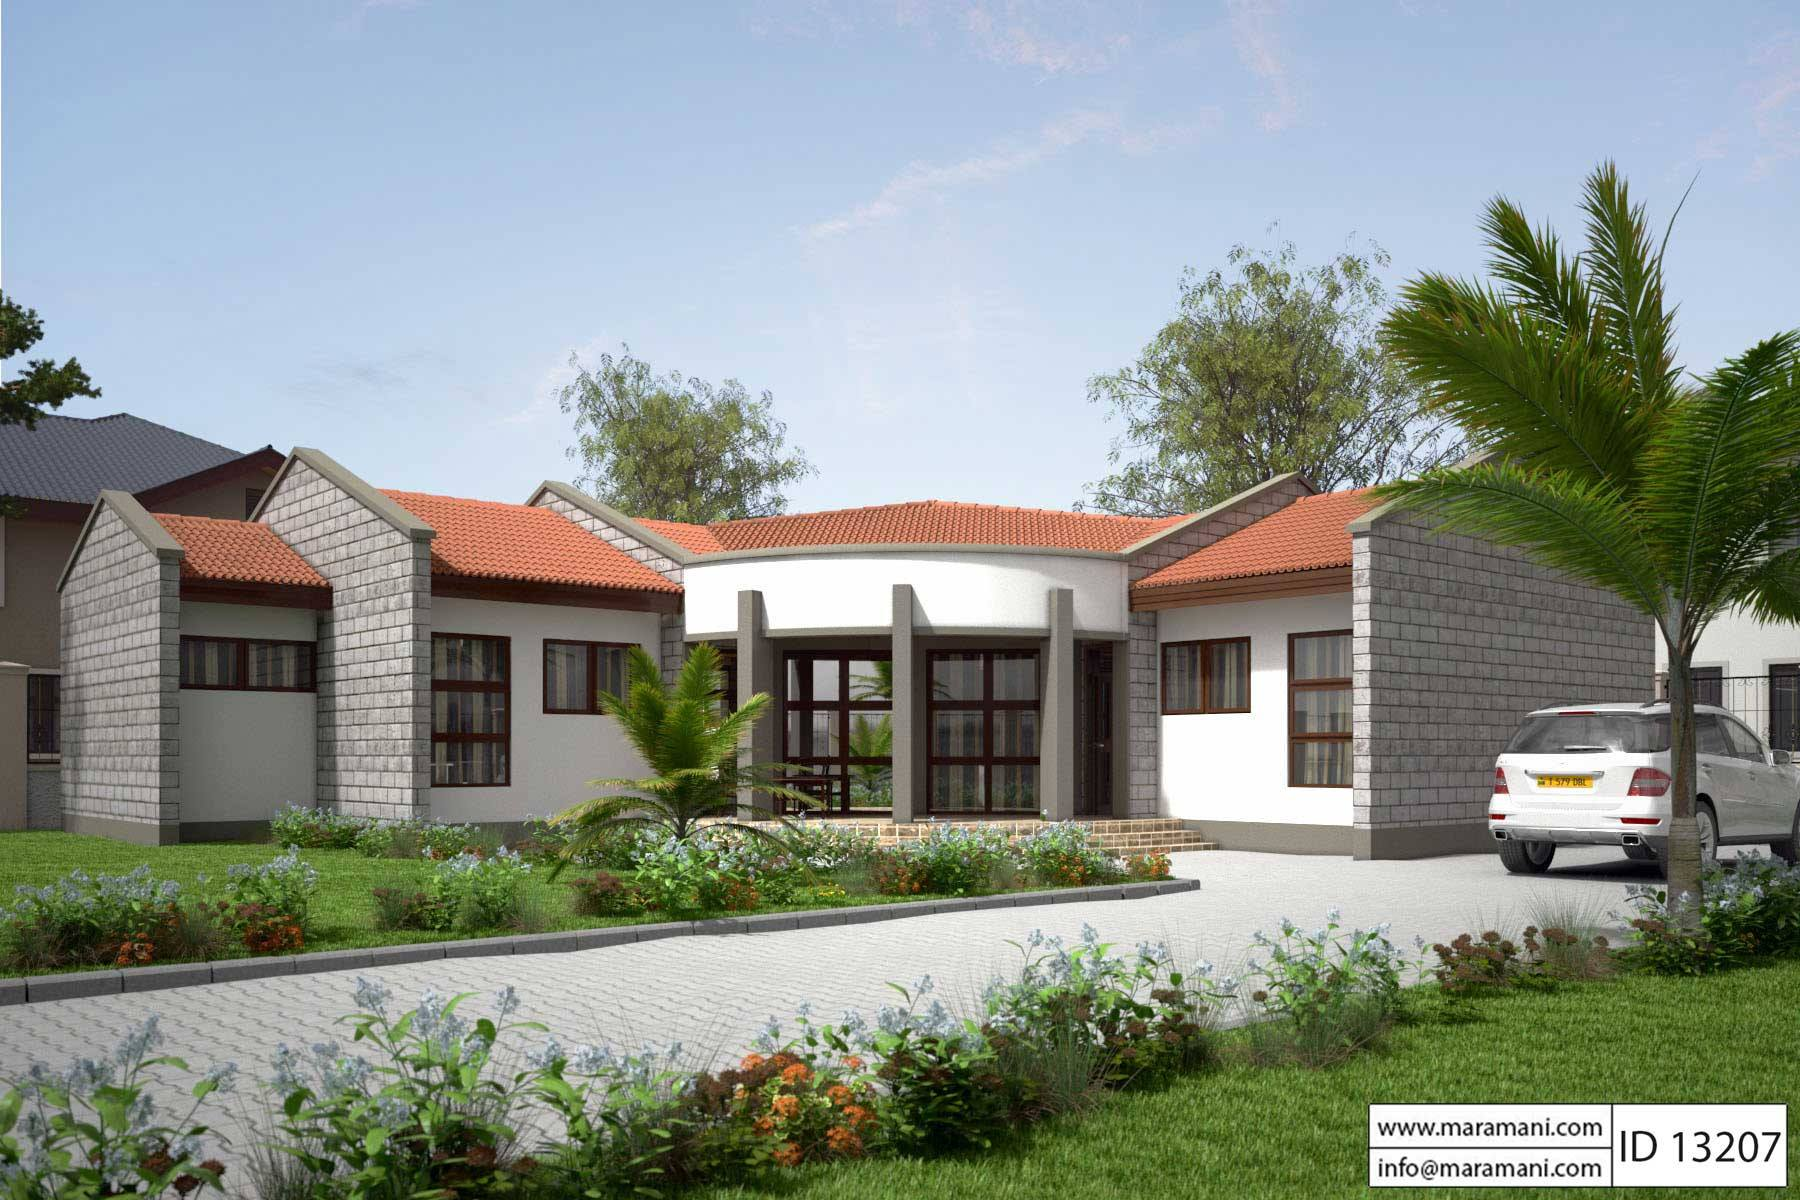 3 Bedroom House Plan   ID 13207